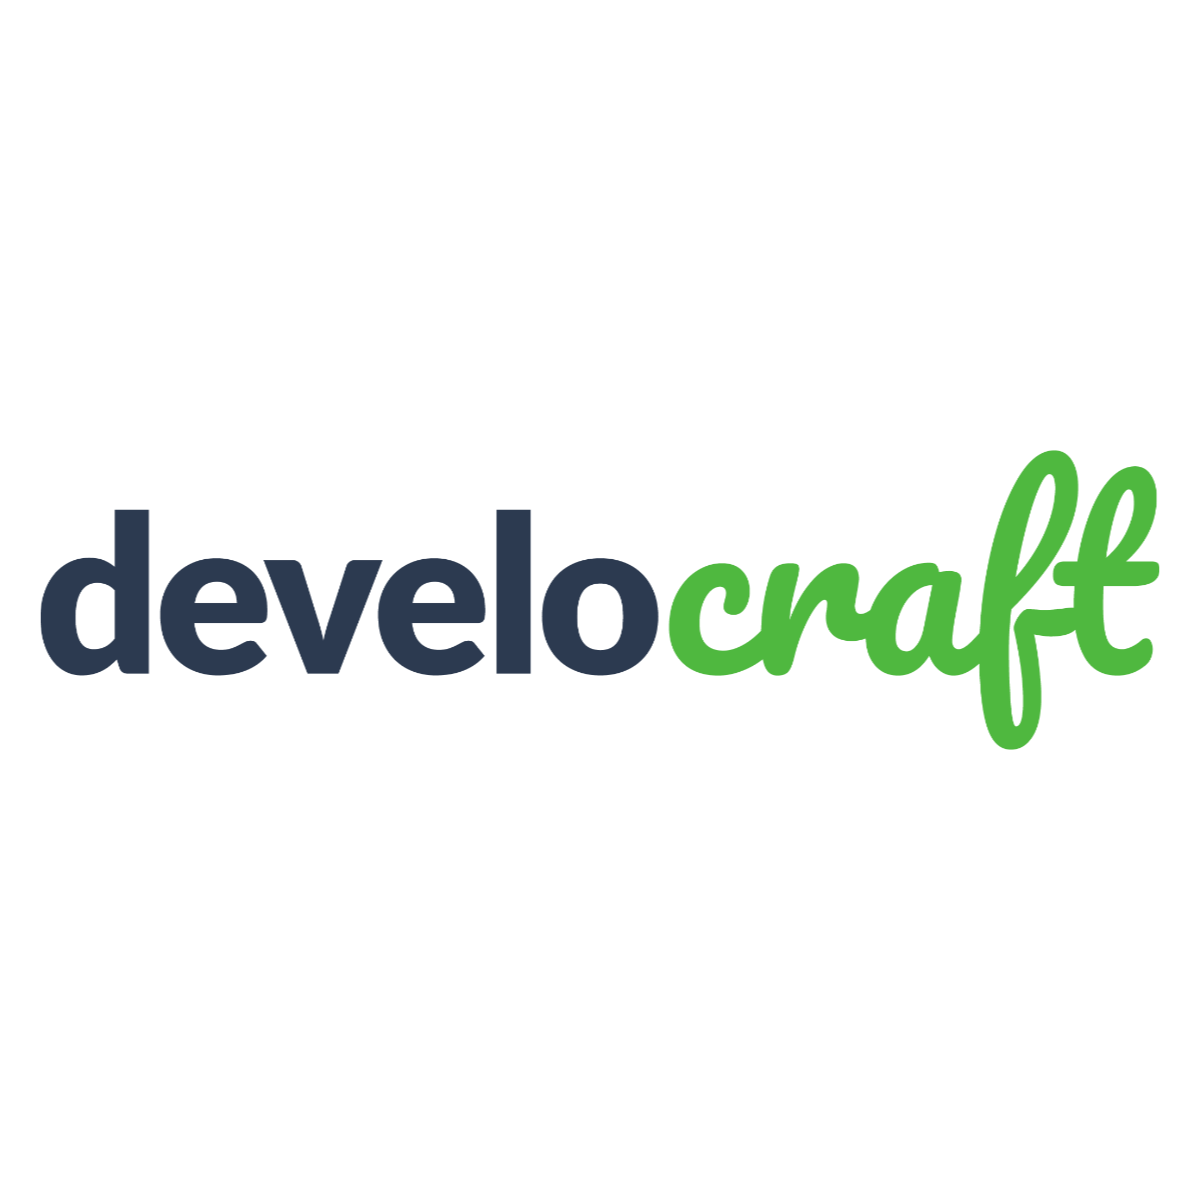 Develocraft